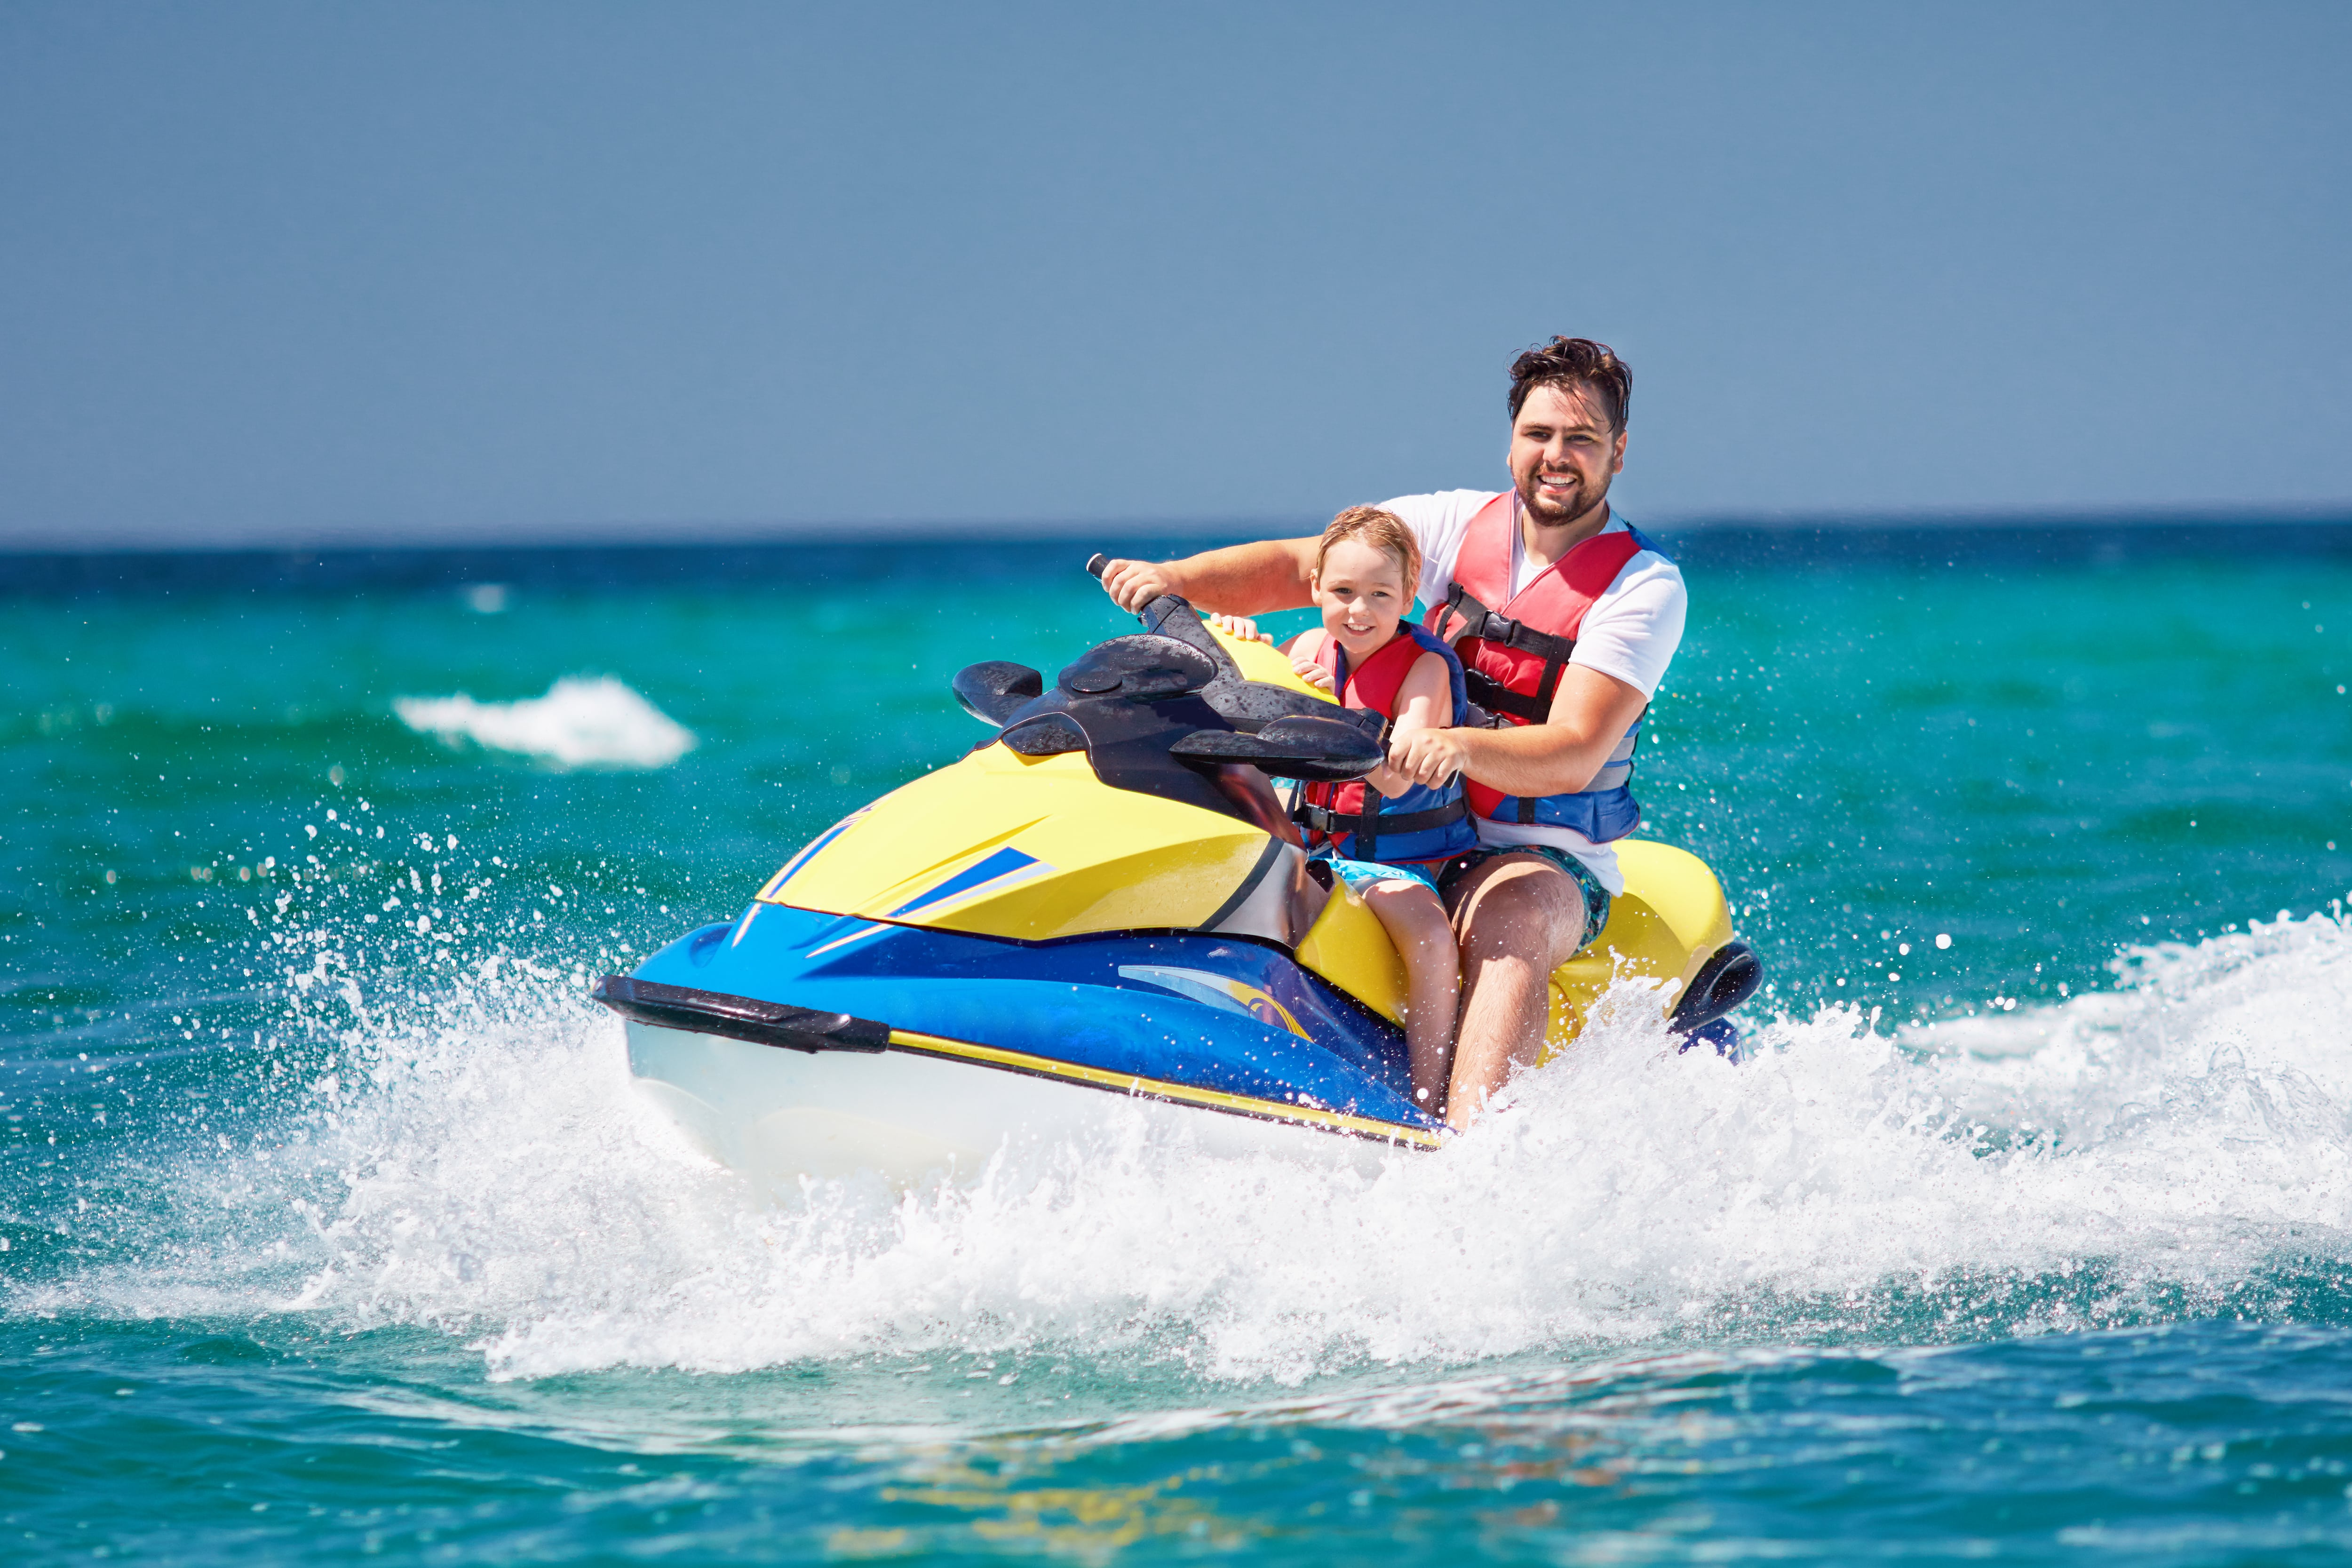 10-17 years old are allowed to go jet skiing under adult supervision